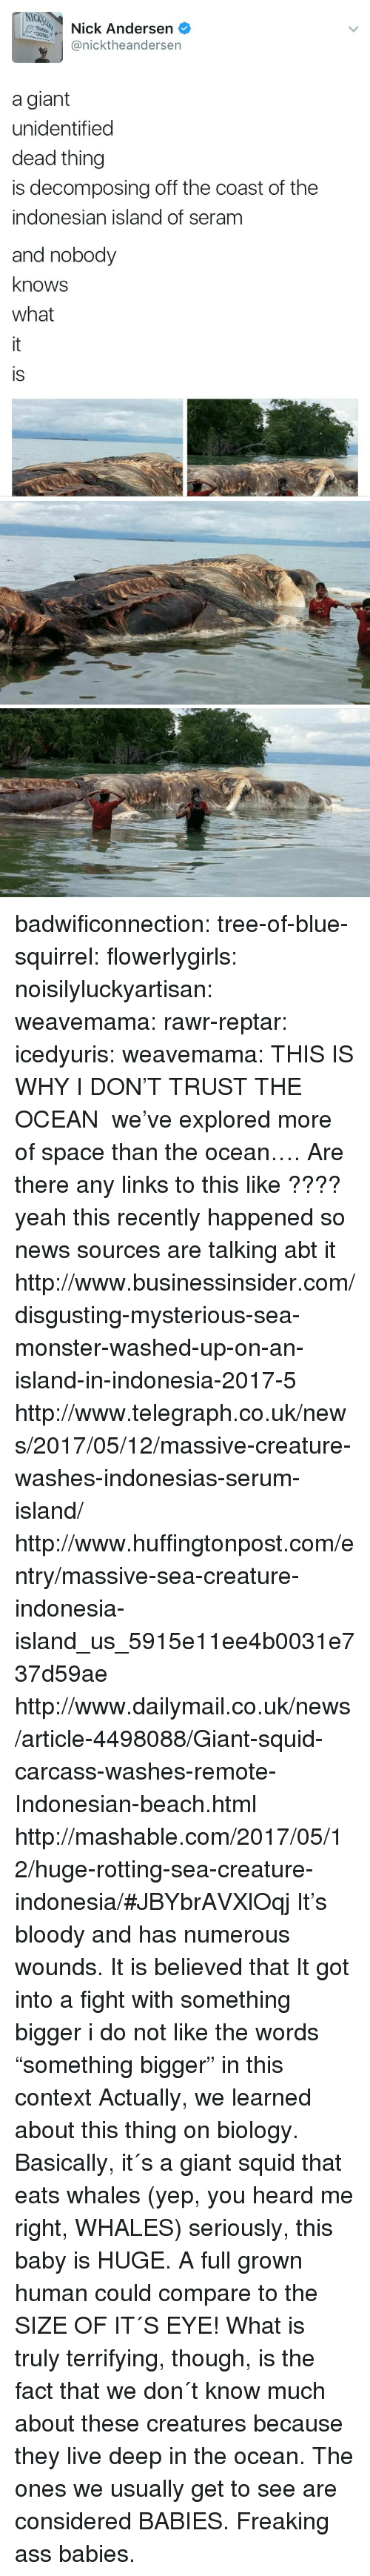 """Ass, Gif, and Monster: NIC  Nick Andersen  @nicktheandersen  a giant  unidentified  dead thing  is decomposing off the coast of the  indonesian island of seram  and nobody  knows  what  is badwificonnection:  tree-of-blue-squirrel:   flowerlygirls:  noisilyluckyartisan:   weavemama:   rawr-reptar:  icedyuris:   weavemama: THIS IS WHY I DON'T TRUST THE OCEAN we've explored more of space than the ocean….   Are there any links to this like ????  yeah this recently happened so news sources are talking abt it http://www.businessinsider.com/disgusting-mysterious-sea-monster-washed-up-on-an-island-in-indonesia-2017-5 http://www.telegraph.co.uk/news/2017/05/12/massive-creature-washes-indonesias-serum-island/ http://www.huffingtonpost.com/entry/massive-sea-creature-indonesia-island_us_5915e11ee4b0031e737d59ae http://www.dailymail.co.uk/news/article-4498088/Giant-squid-carcass-washes-remote-Indonesian-beach.html http://mashable.com/2017/05/12/huge-rotting-sea-creature-indonesia/#JBYbrAVXlOqj   It's bloody and has numerous wounds. It is believed that It got into a fight with something bigger   i do not like the words """"something bigger"""" in this context  Actually, we learned about this thing on biology. Basically, it´s a giant squid that eats whales (yep, you heard me right, WHALES) seriously, this baby is HUGE. A full grown human could compare to the SIZE OF IT´S EYE! What is truly terrifying, though, is the fact that we don´t know much about these creatures because they live deep in the ocean. The ones we usually get to see are considered BABIES. Freaking ass babies."""